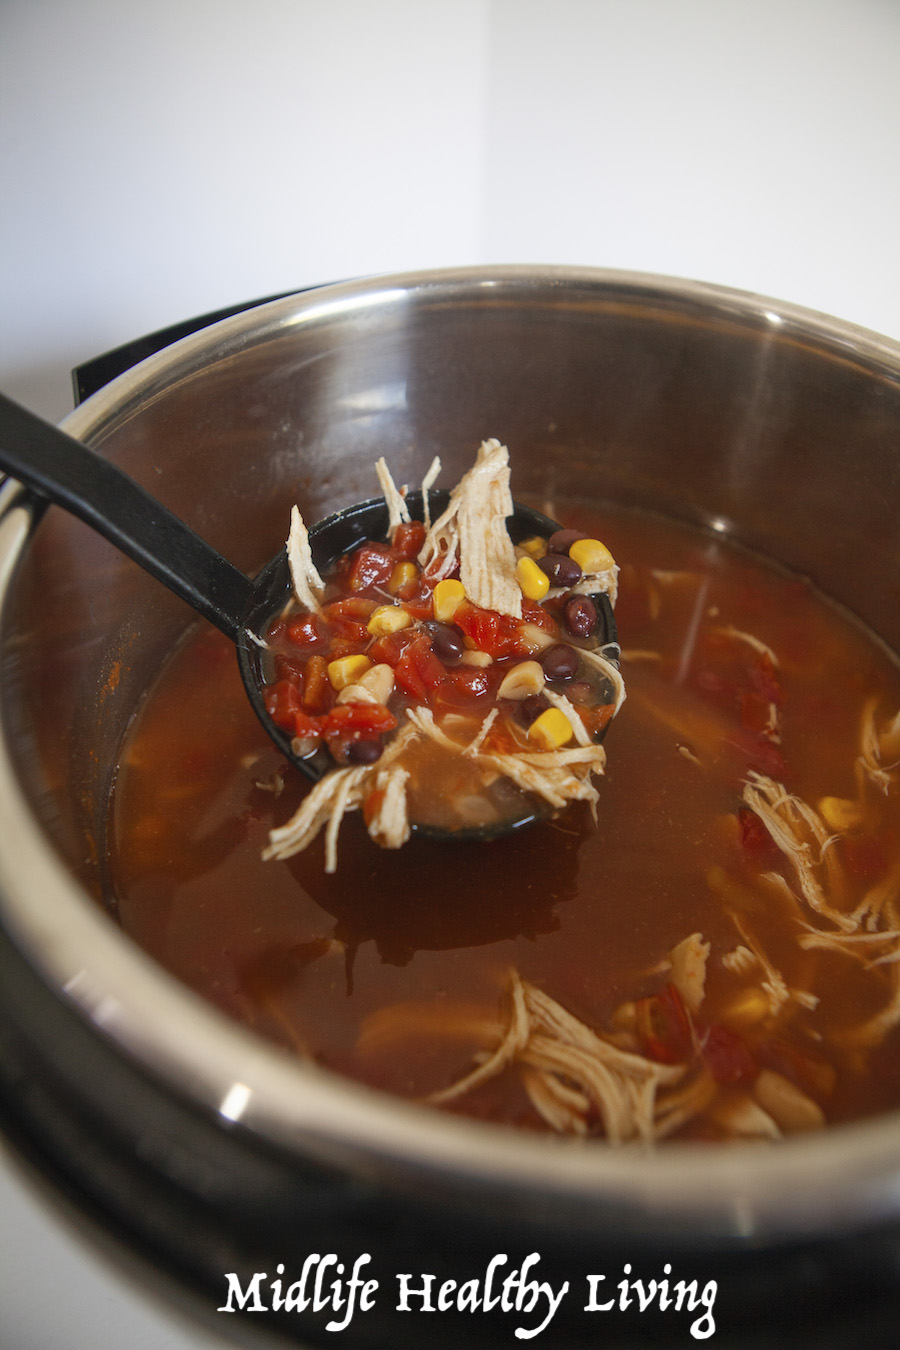 A scoop of the finished Weight Watchers chicken chili ready to be served and eaten.